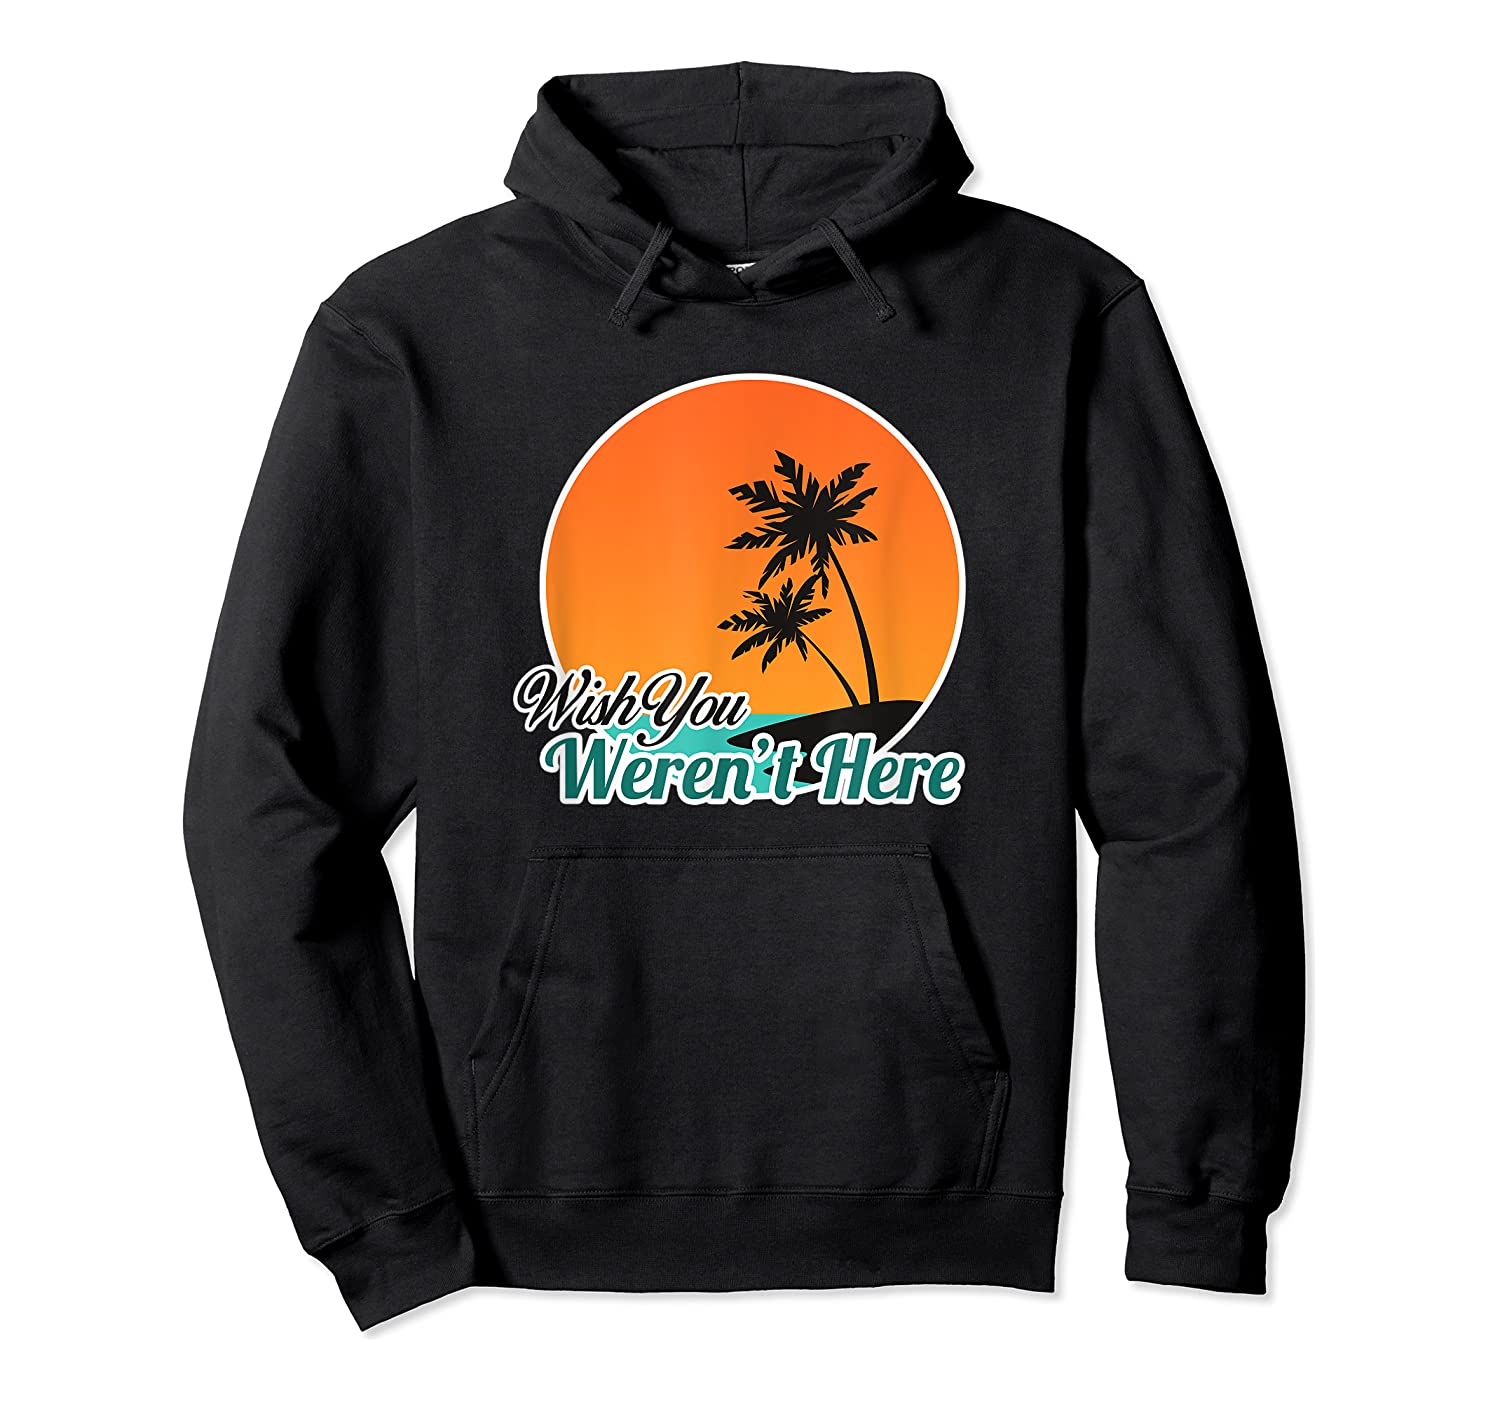 Wish You Weren't Here Funny Sarcastion Beach Shirts Unisex Pullover Hoodie